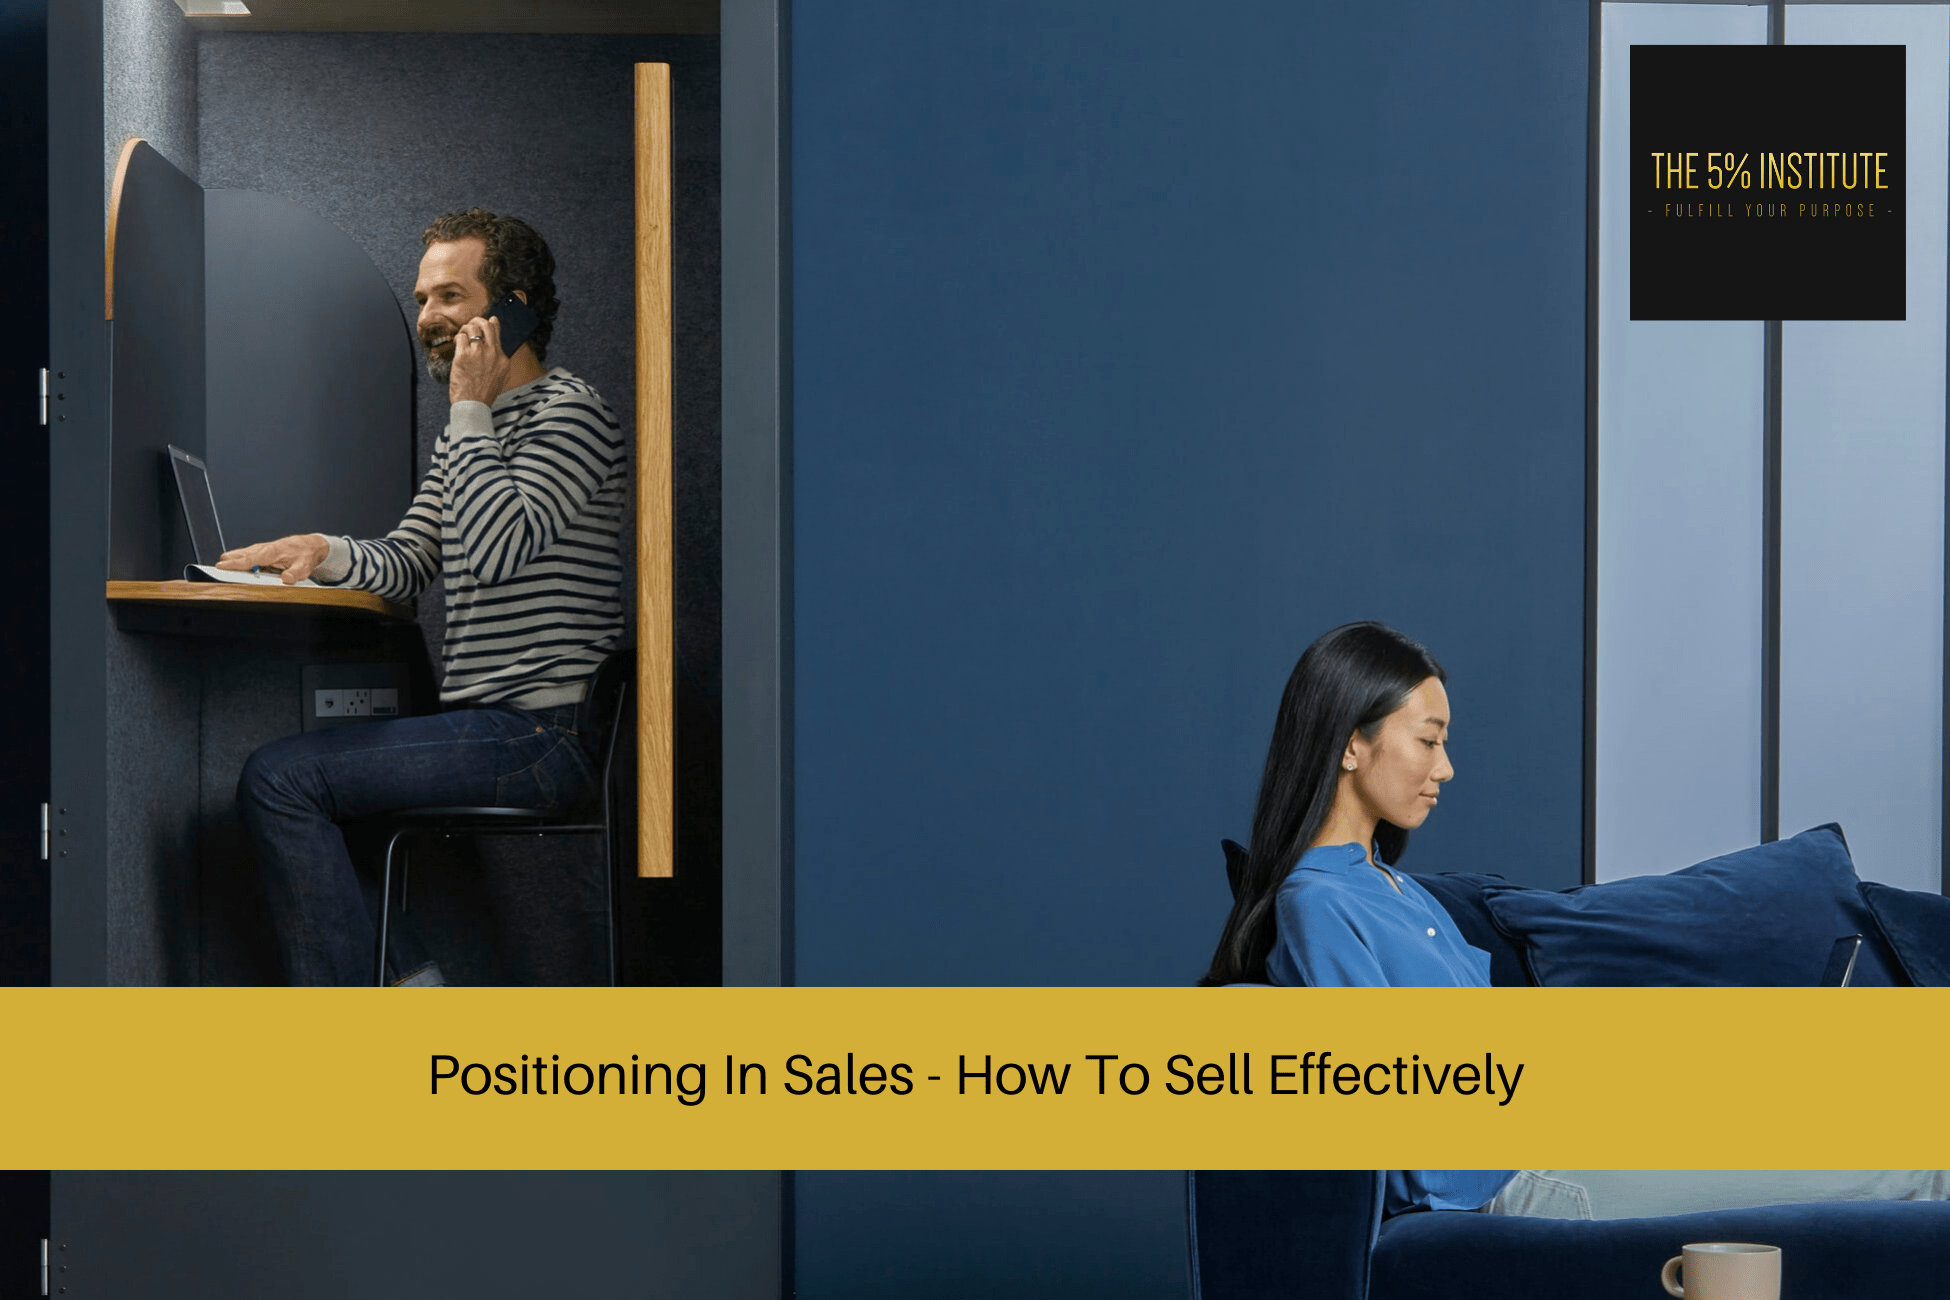 positioning in sales